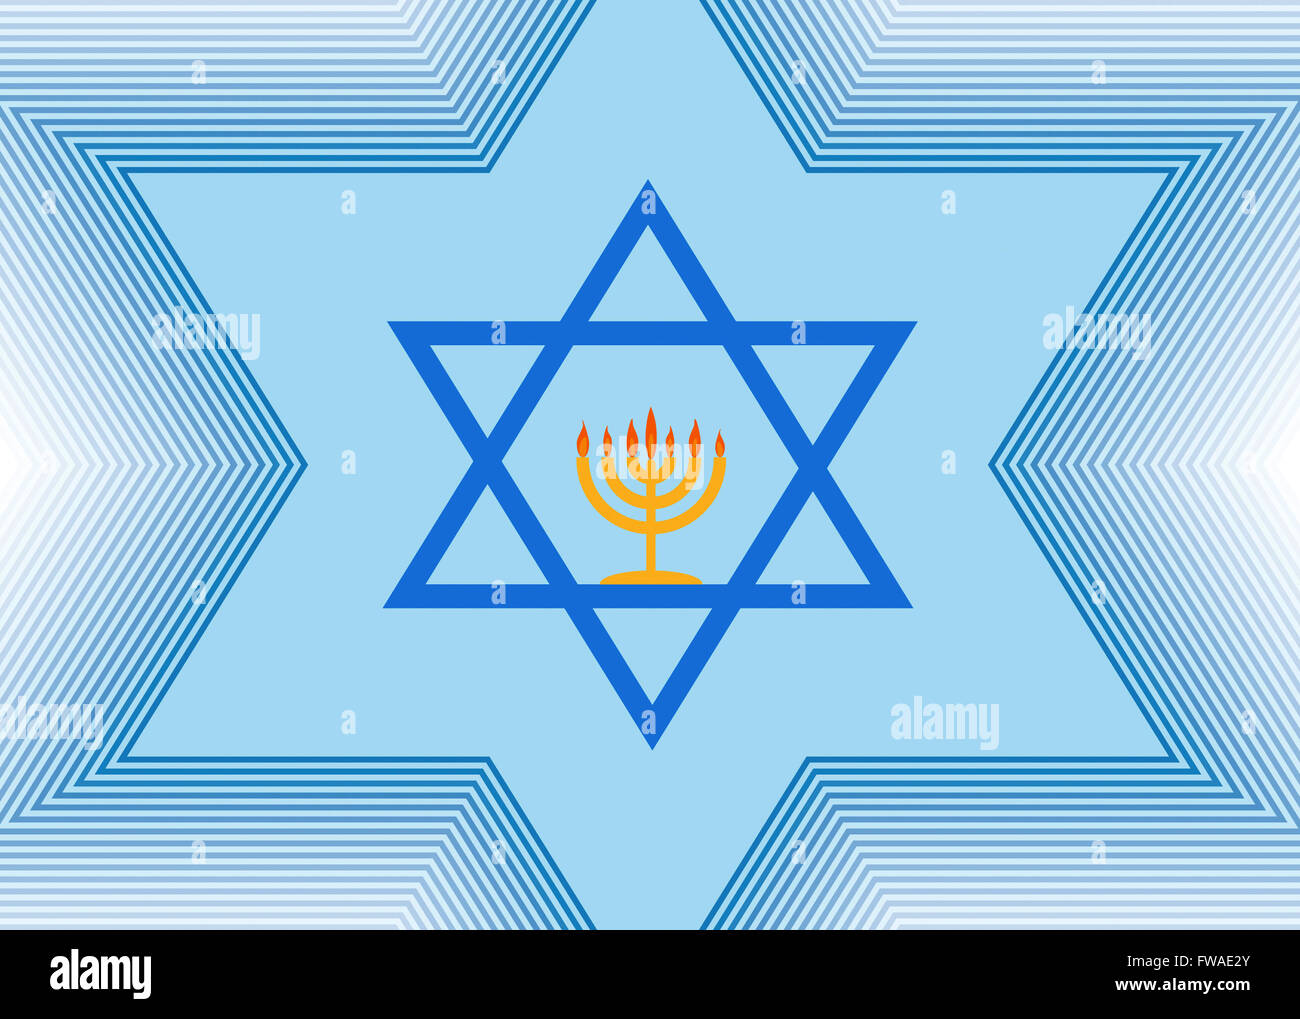 Abstract light blue background with the Star of David and Menorah - Stock Image